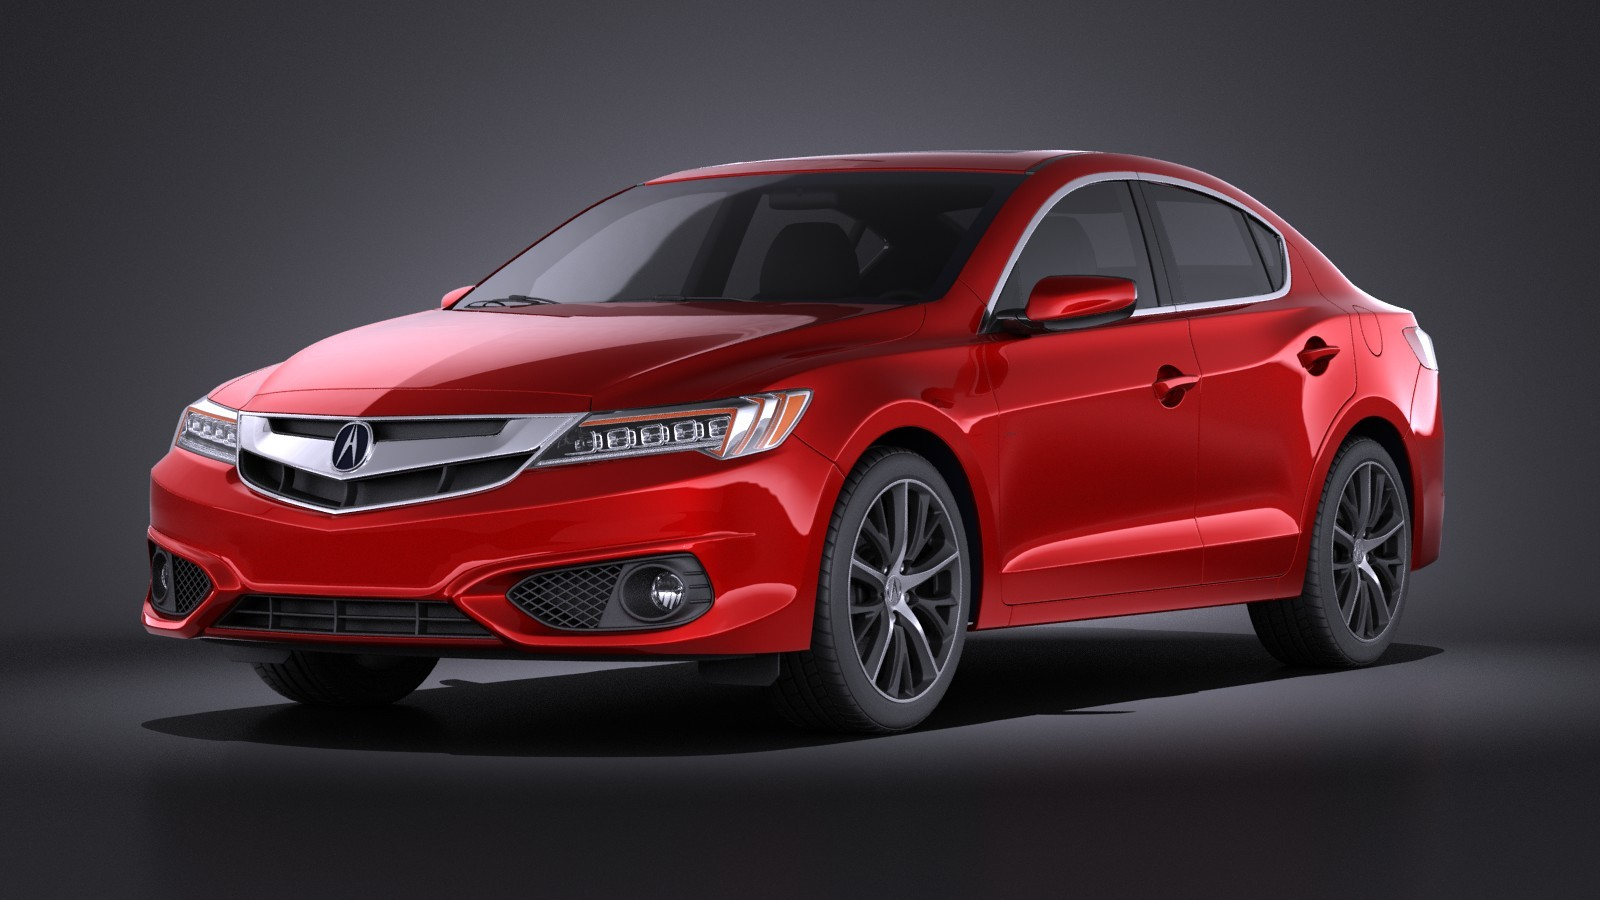 the is delivers spectech ilx standards elegant review updates styling sedan include car question quality whole take drive what now without a fast spec test jewel sporty eye acura in and new nose lane